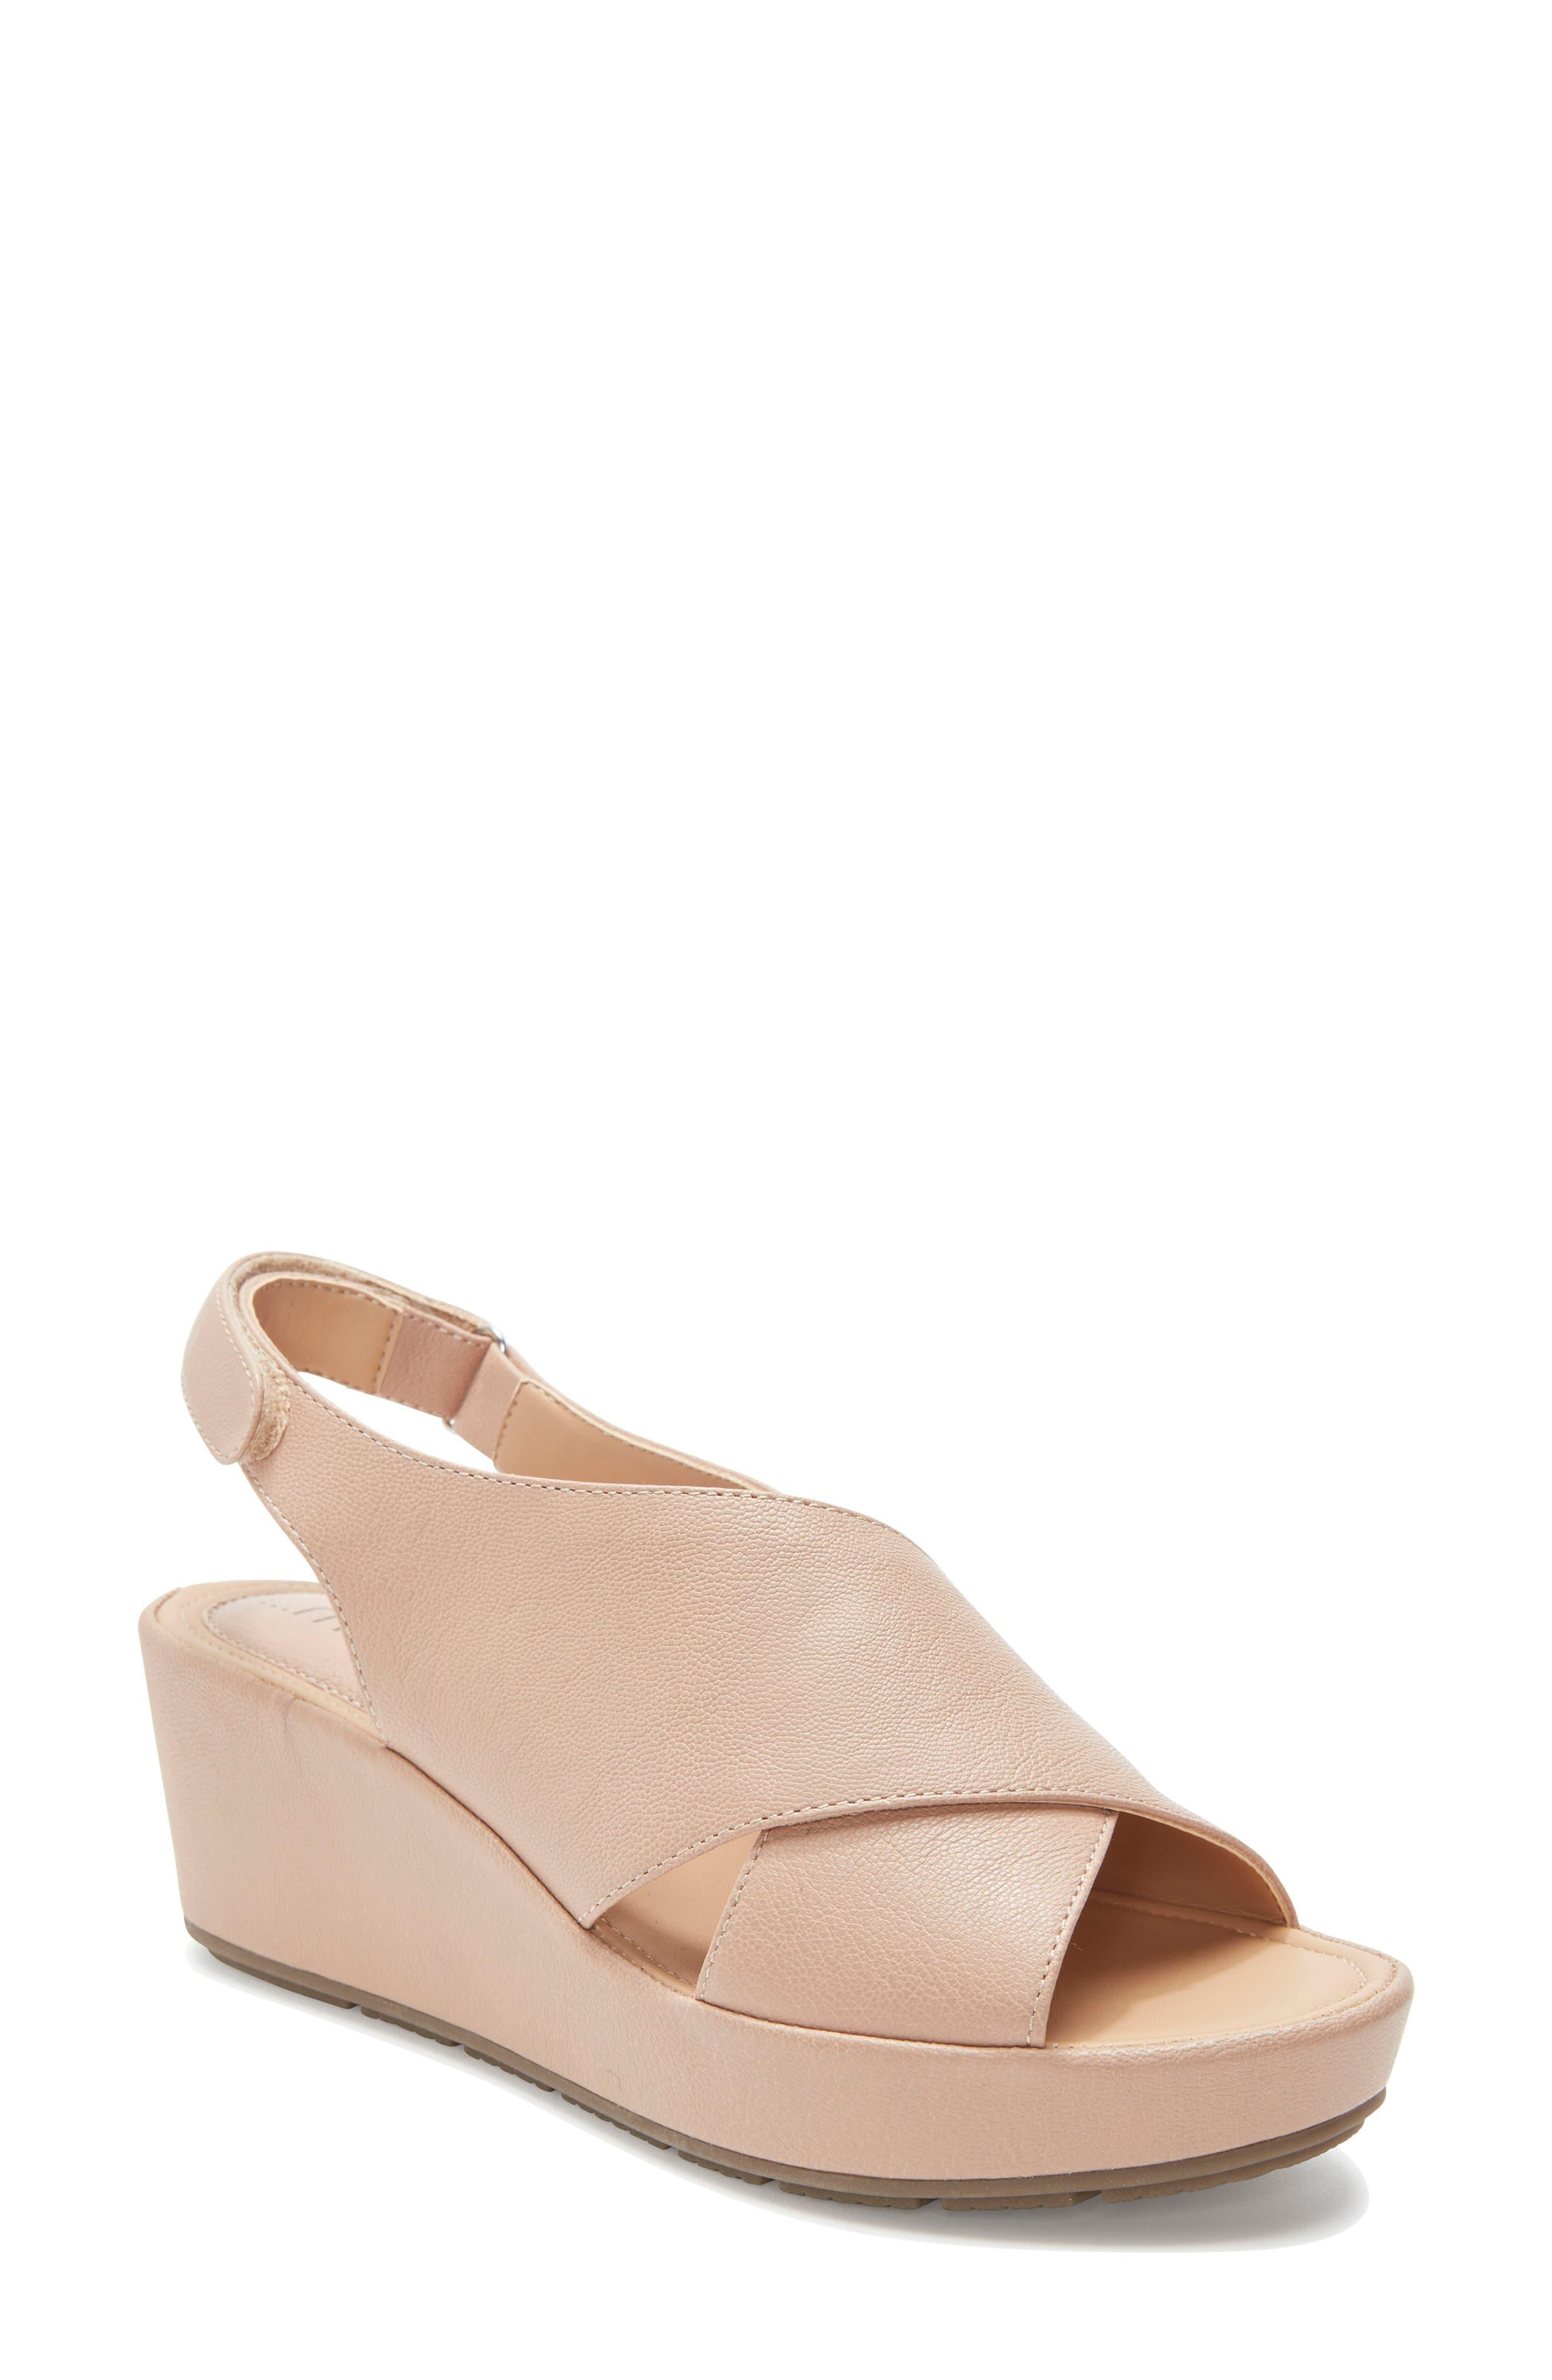 2f098916ba Me Too Arena Wedge Sandal in Natural - Lyst